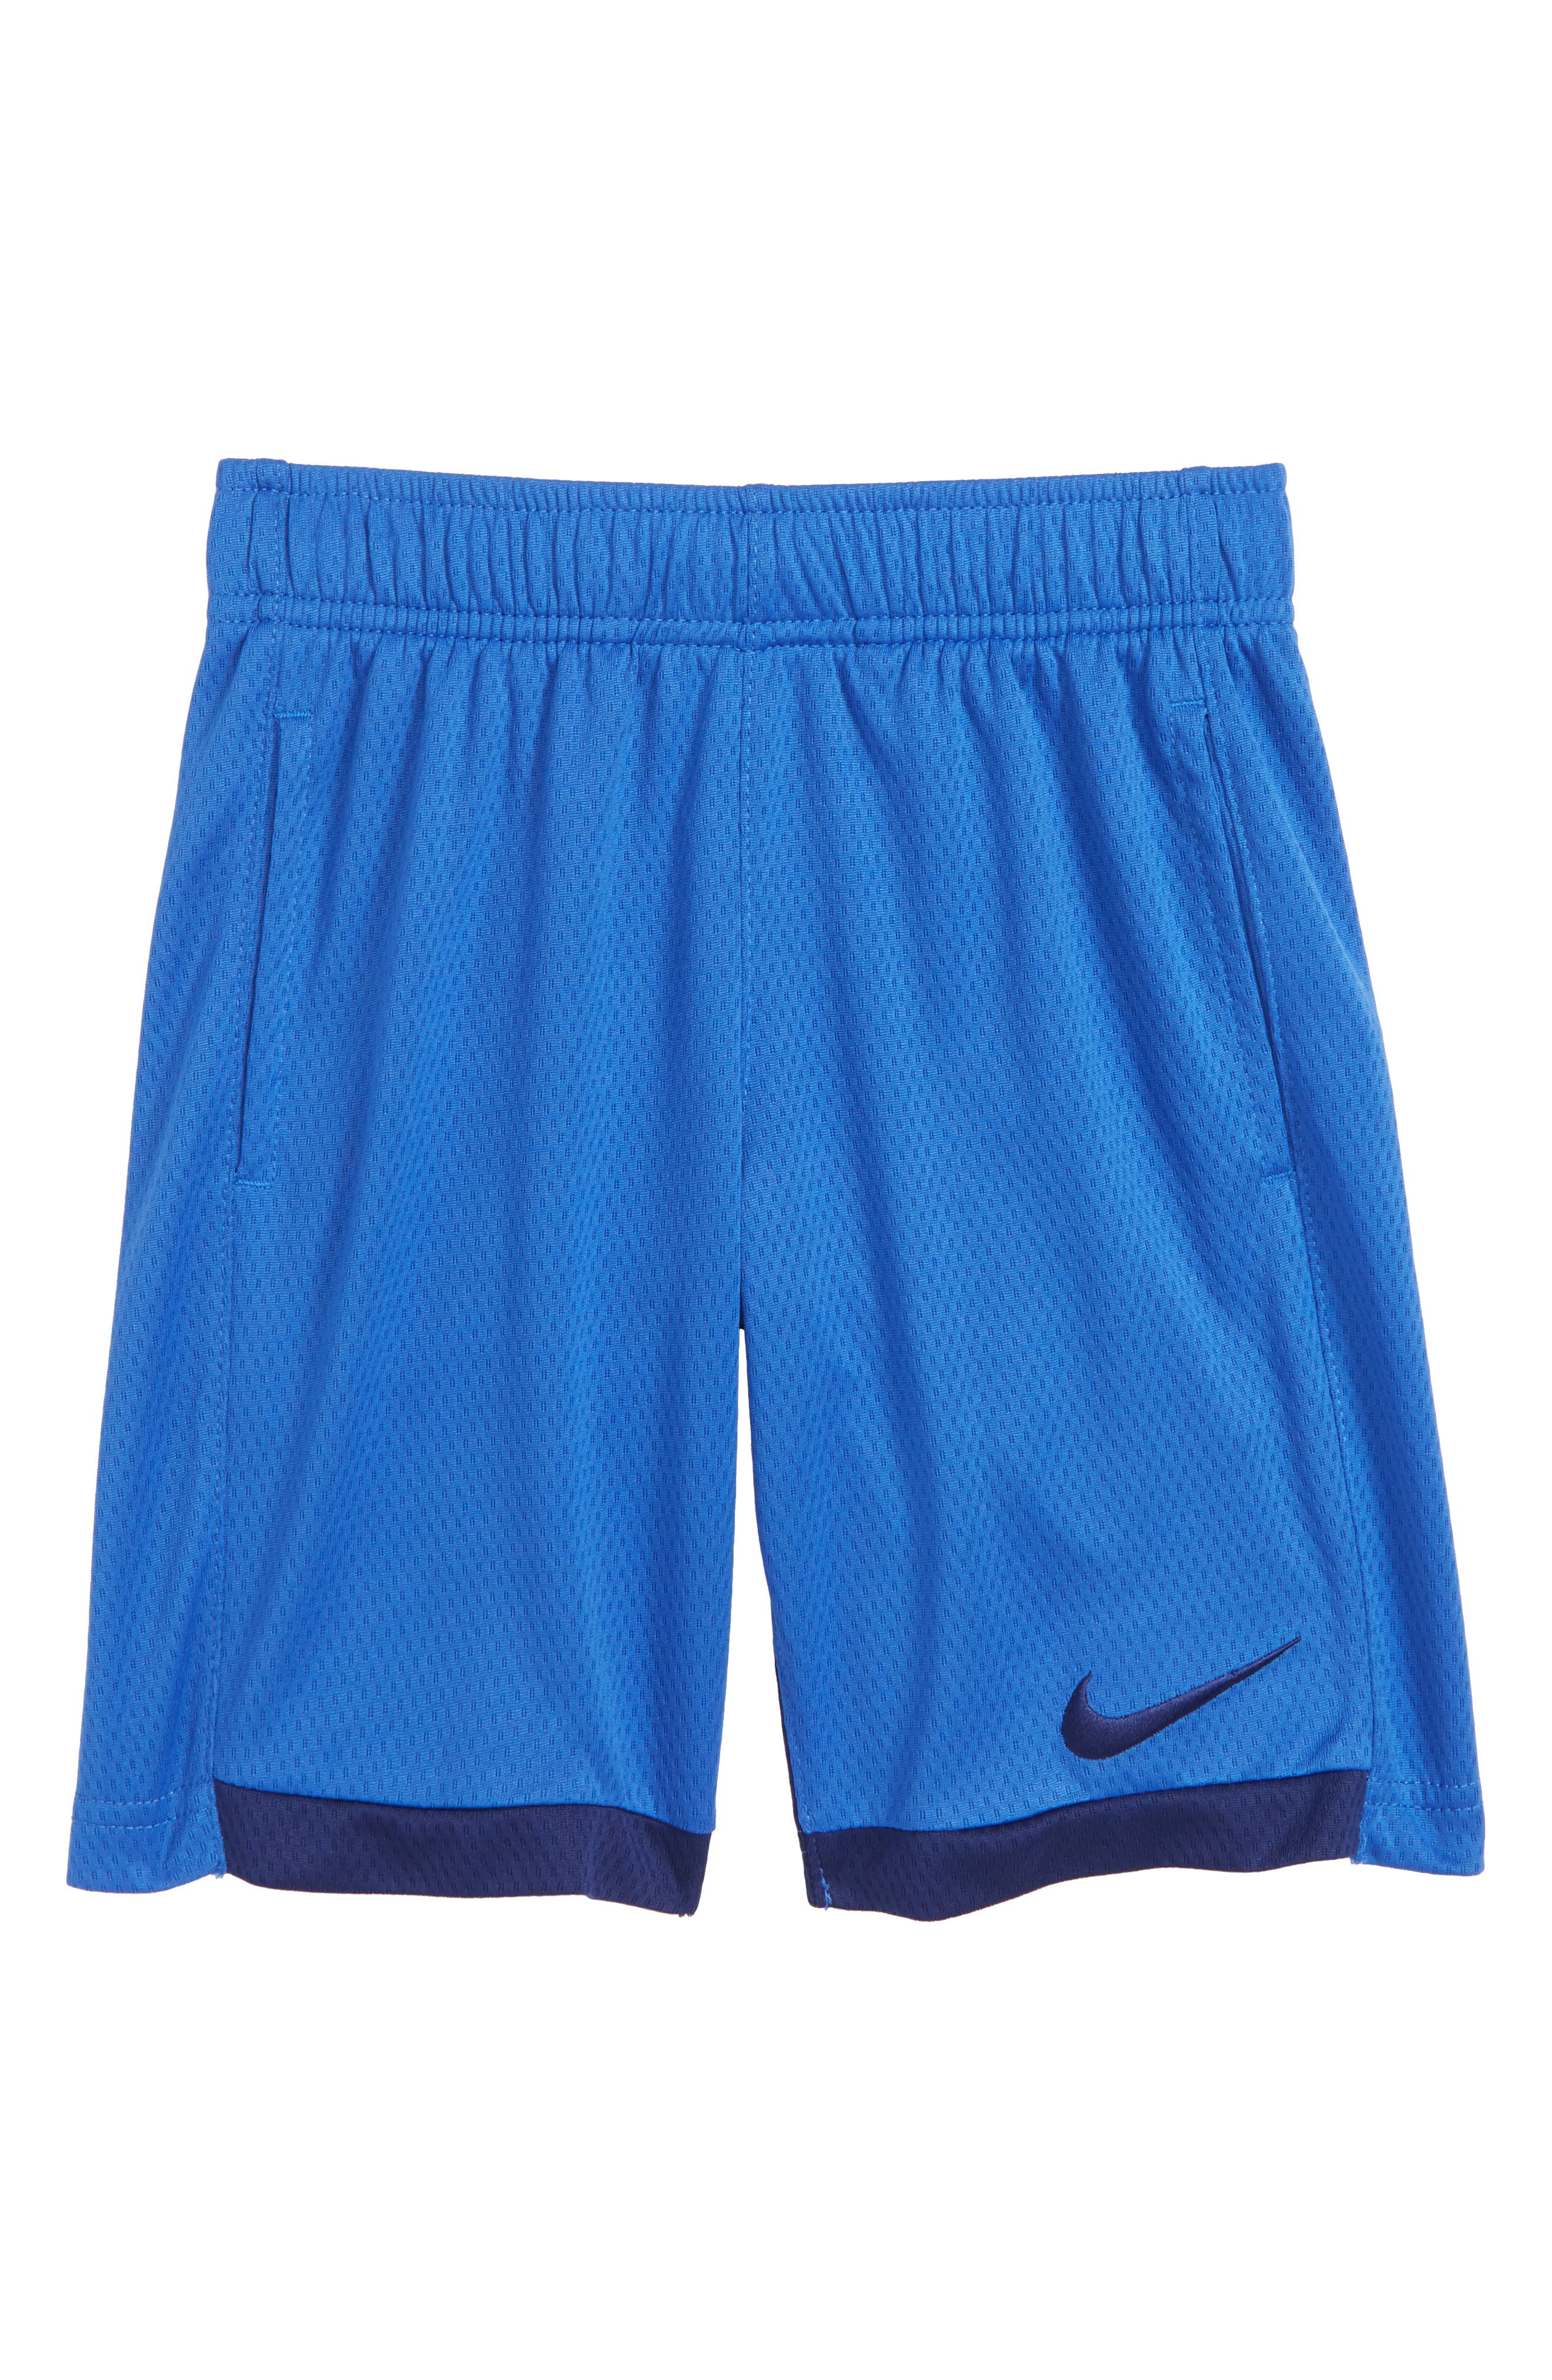 Dry Trophy Shorts,                         Main,                         color, Game Royal